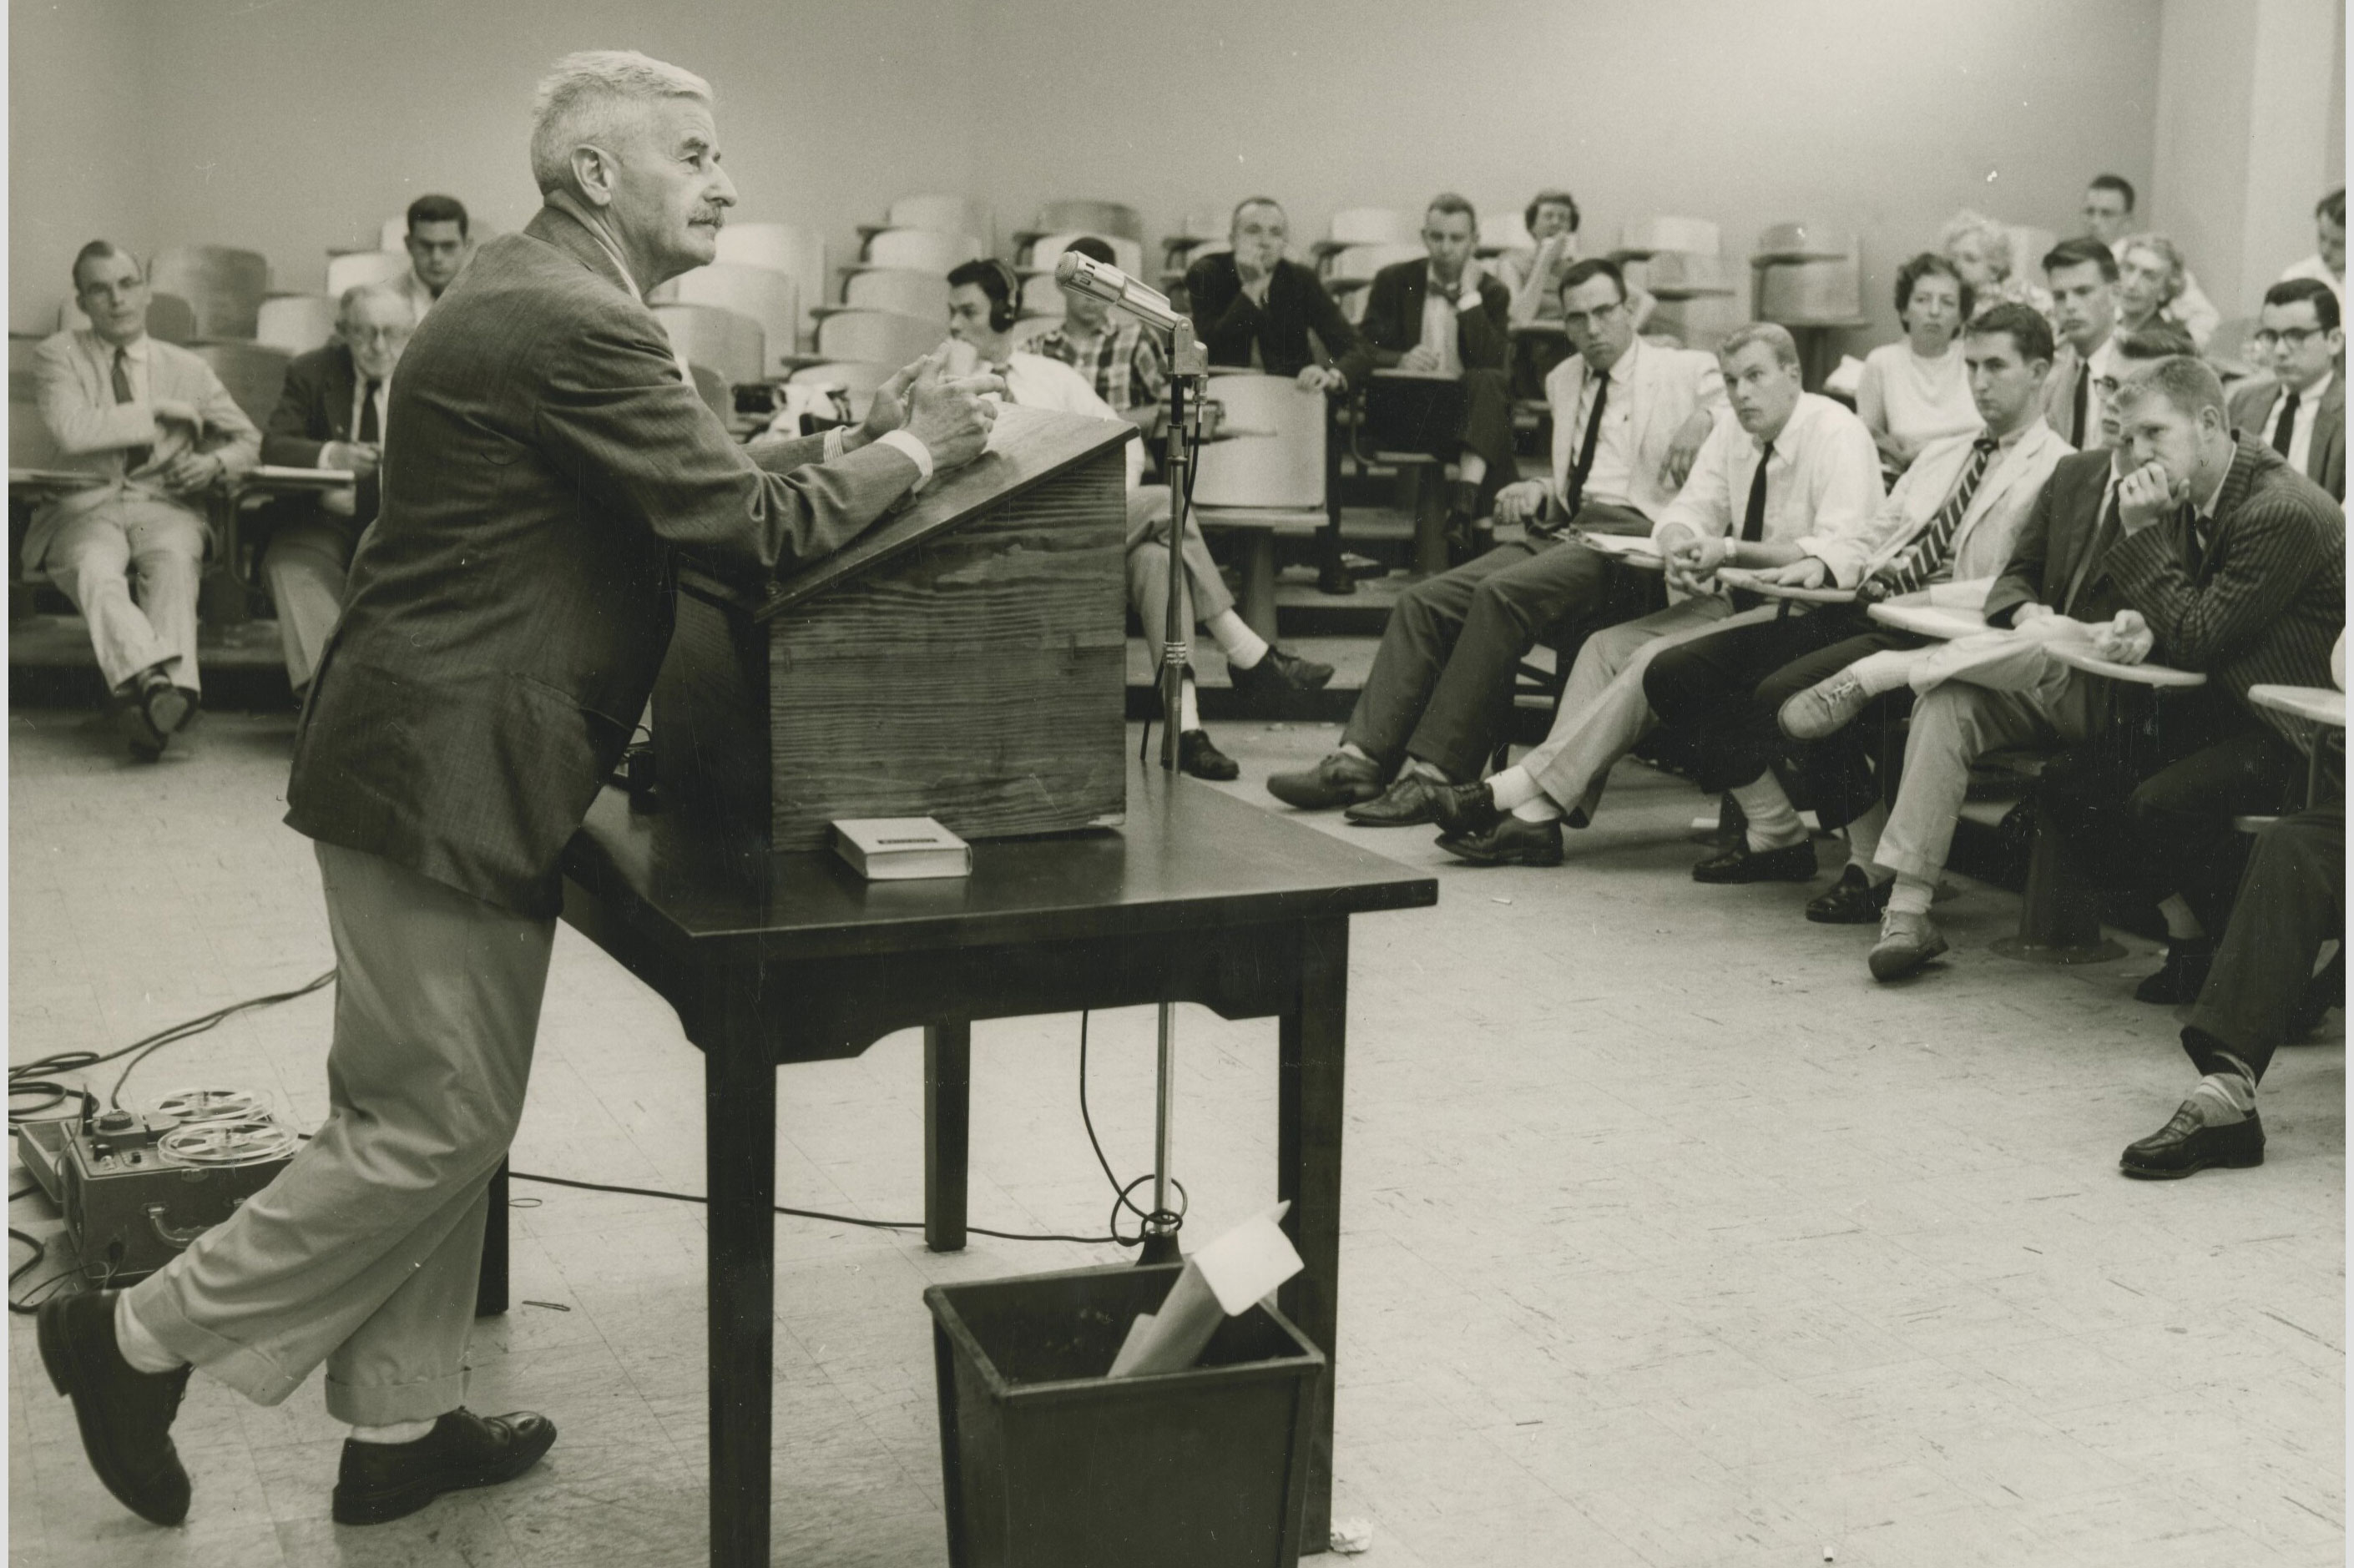 Faulkner came to the University in 1957 and 1958 for two terms as its first writer-in-residence and remains a prominent literary figure here.